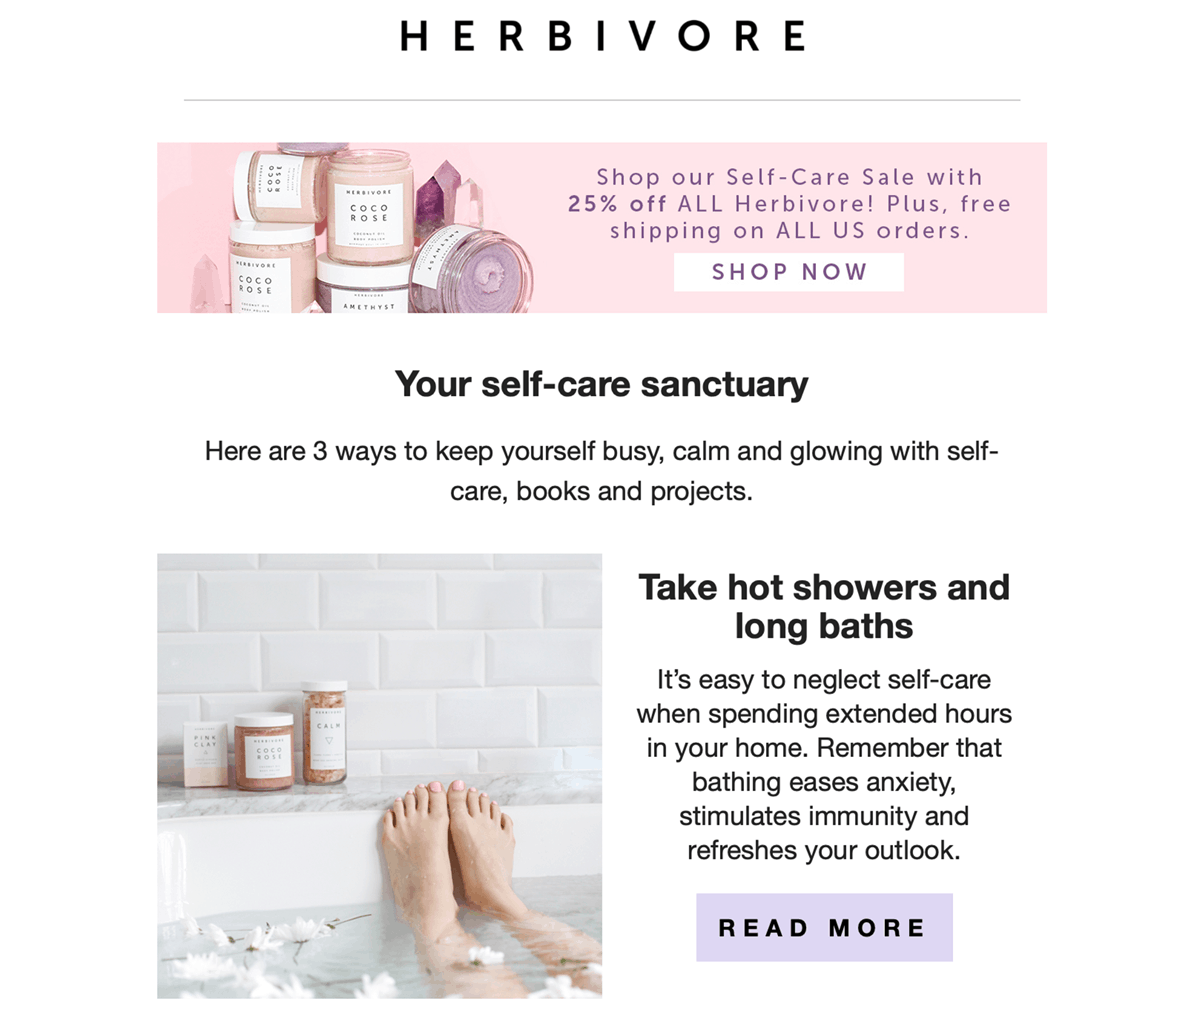 Online beauty brand, Herbivore Botanicals, is a great example of a brand shifting their marketing strategy to meet their customers' current needs during the coronavirus pandemic.